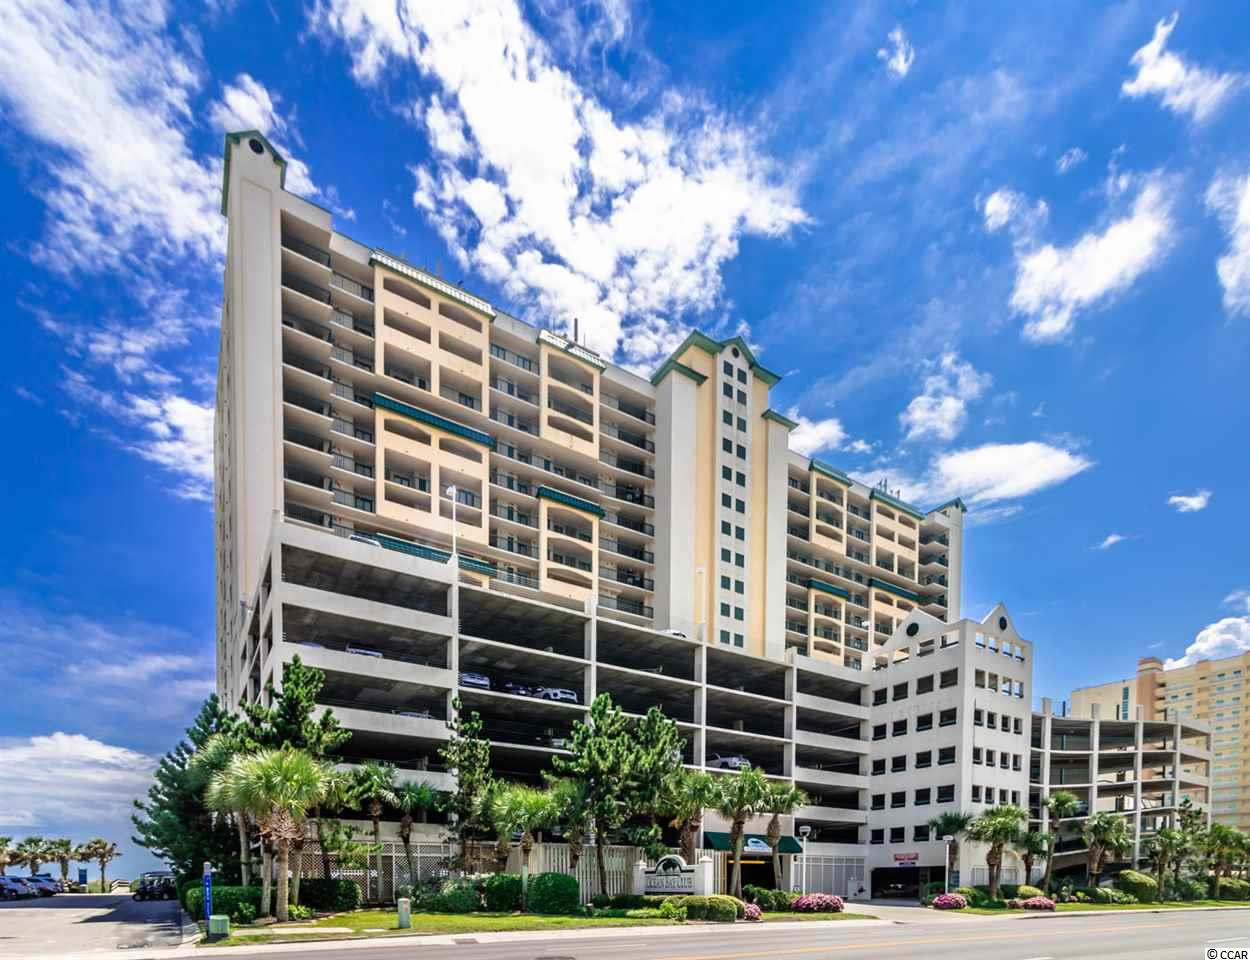 Condo / Townhome / Villa for Sale at 201 S Ocean Blvd 201 S Ocean Blvd North Myrtle Beach, South Carolina 29582 United States